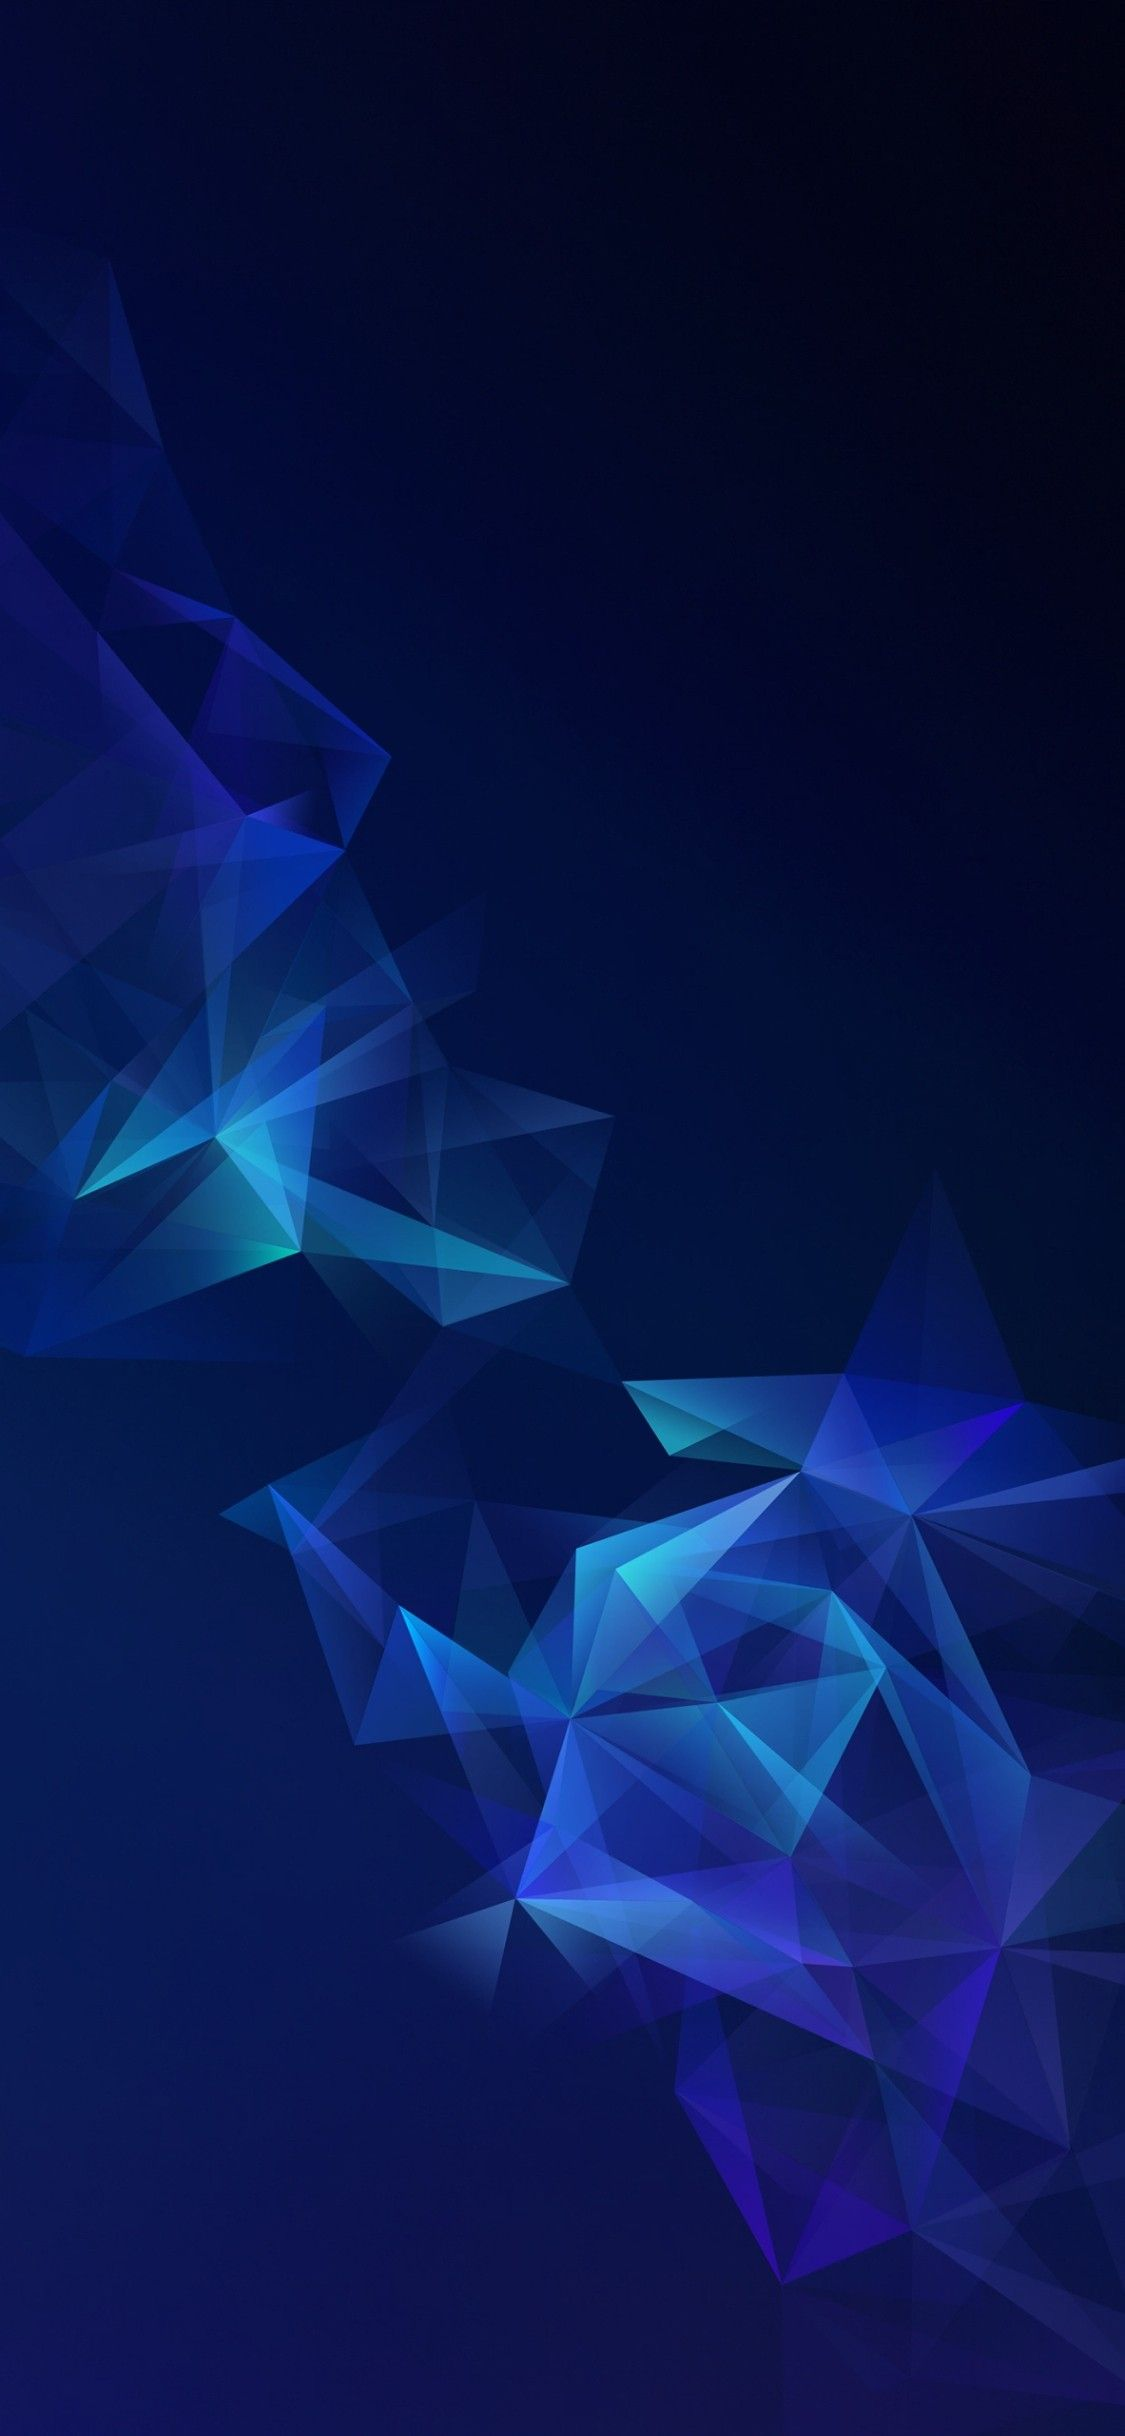 Blue s9 s9 plus wallpaper galaxy colour abstract digital 1125x2436